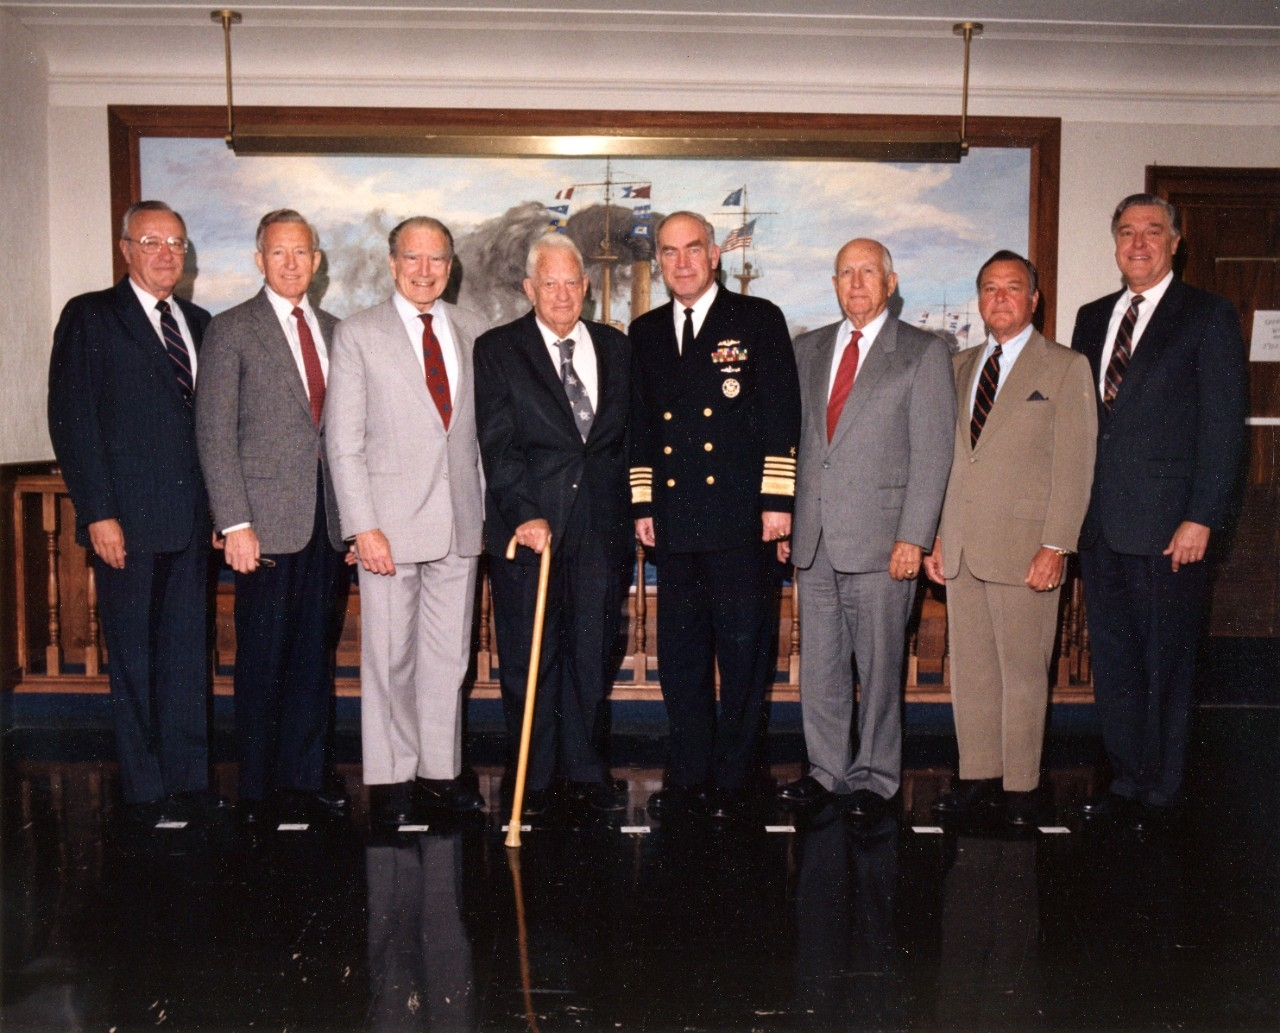 The current CNO, Admiral Frank Kelso, with former CNOs at the Pentagon, 19 October 1990. Those present are (from left to right): Admiral Carlisle A.H. Trost, CNO in 1986-1990; Admiral Thomas Hayward, CNO in 1978-1982;   Admiral Elmo Zumwalt, CNO in 1970-1974; Admiral Arleigh A. Burke, CNO in 1955-1961; Admiral Kelso; Admiral Thomas Moorer, CNO in 1967-1970; Admiral James Holloway, CNO in 1974-1978; and Admiral James Watkins, CNO in 1982-1986.  Photographed by Dave Wilson. Official U.S. Navy Photograph, from the collections of the Naval History and Heritage Command.